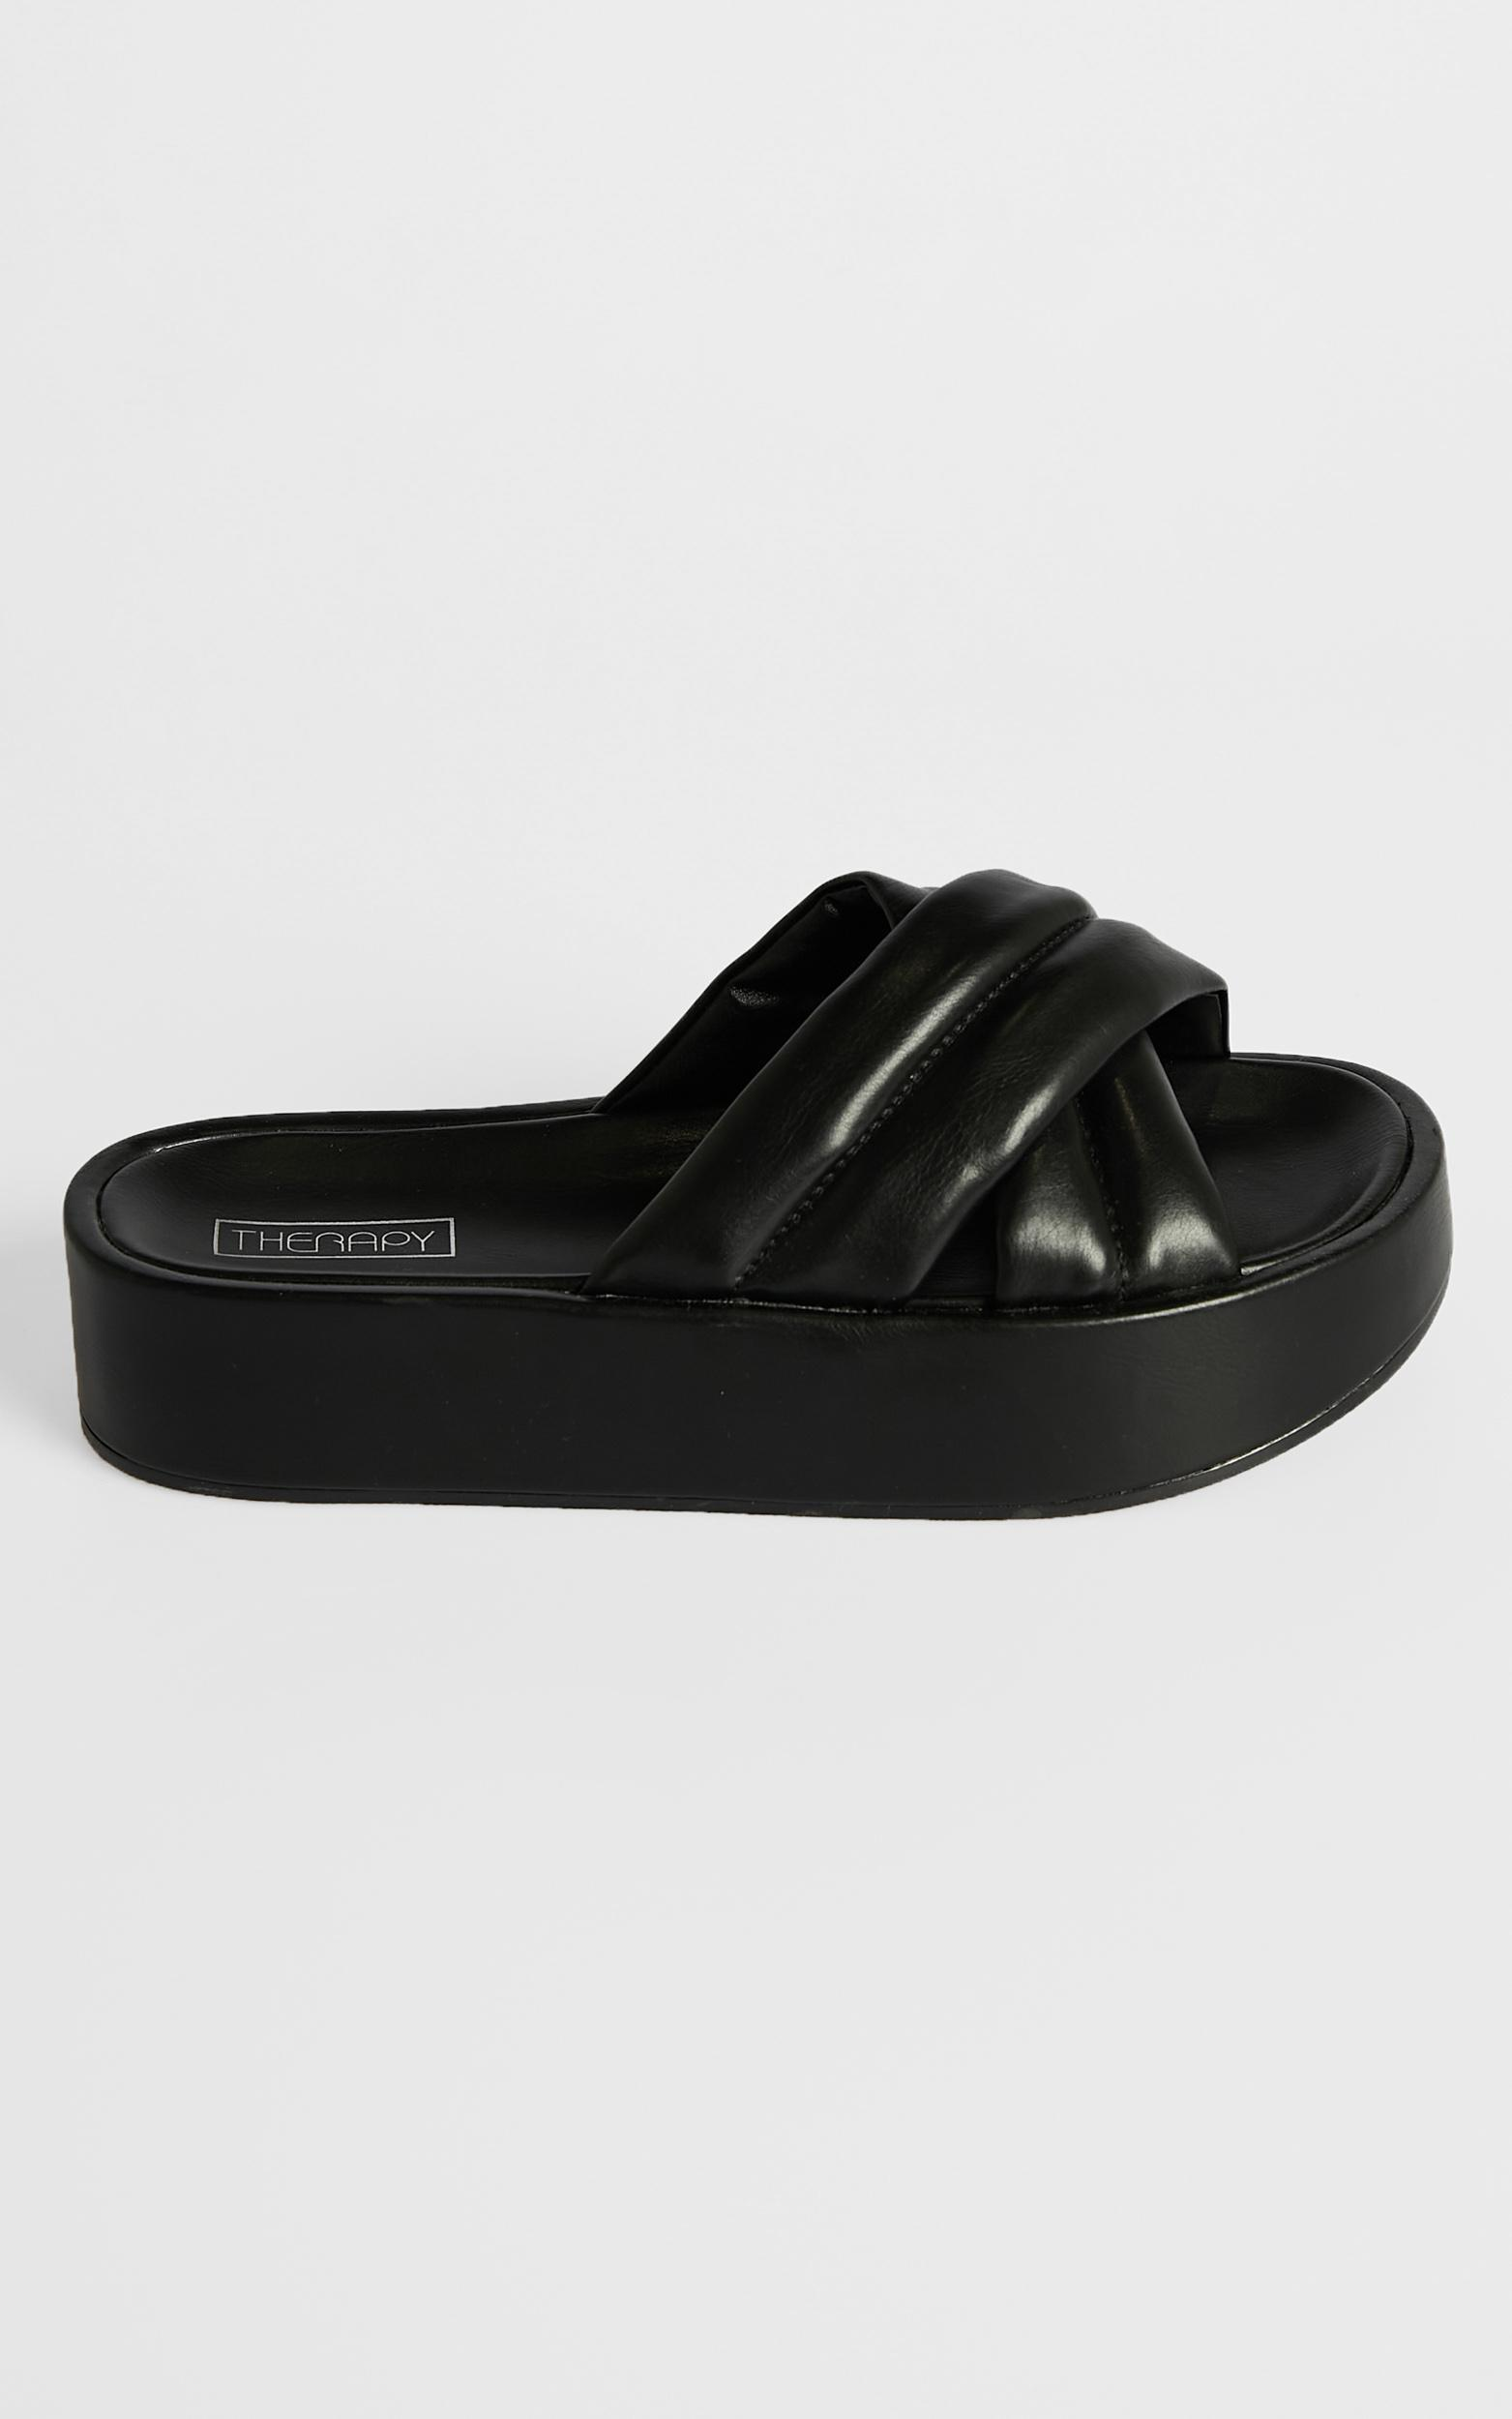 Therapy - Heir Slides in Black - 5, Black, hi-res image number null